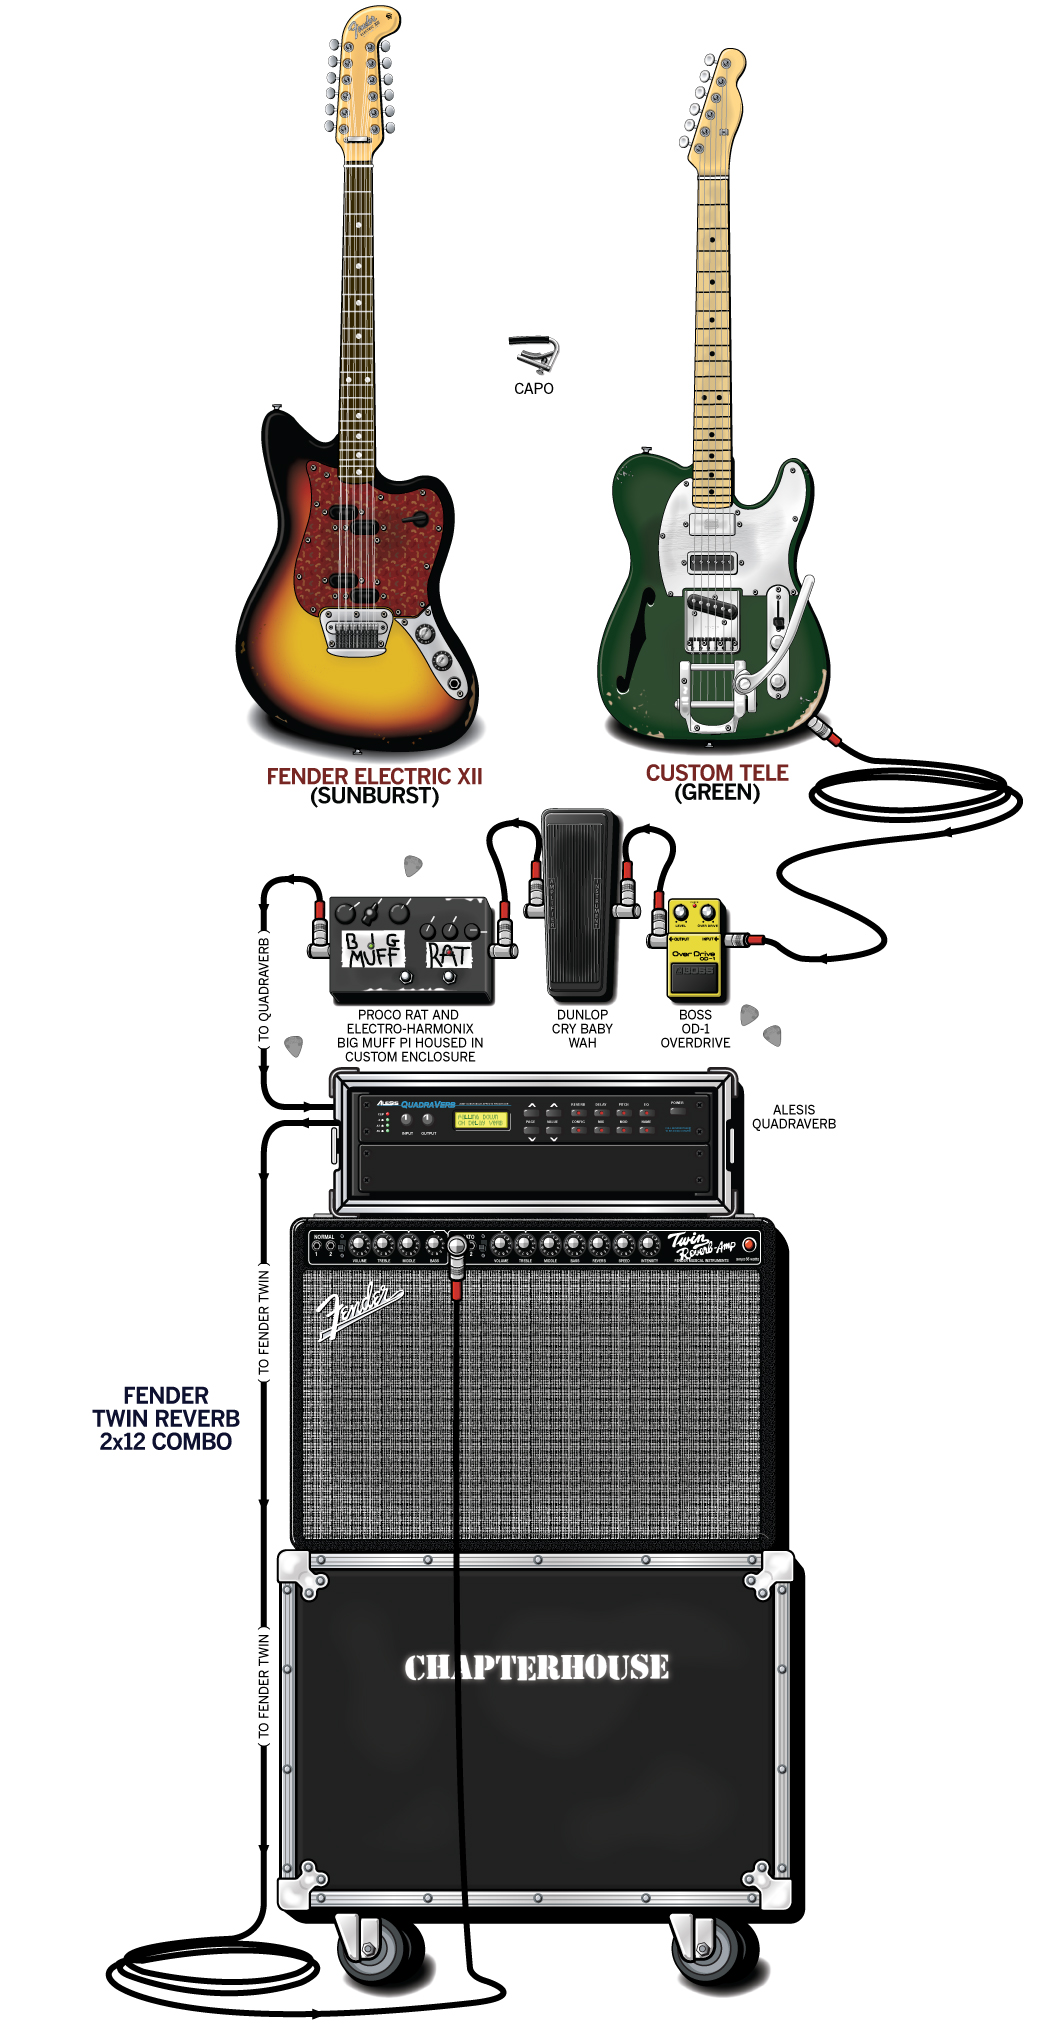 Stephen Patman Guitar Gear & Rig – Chapterhouse – 1992